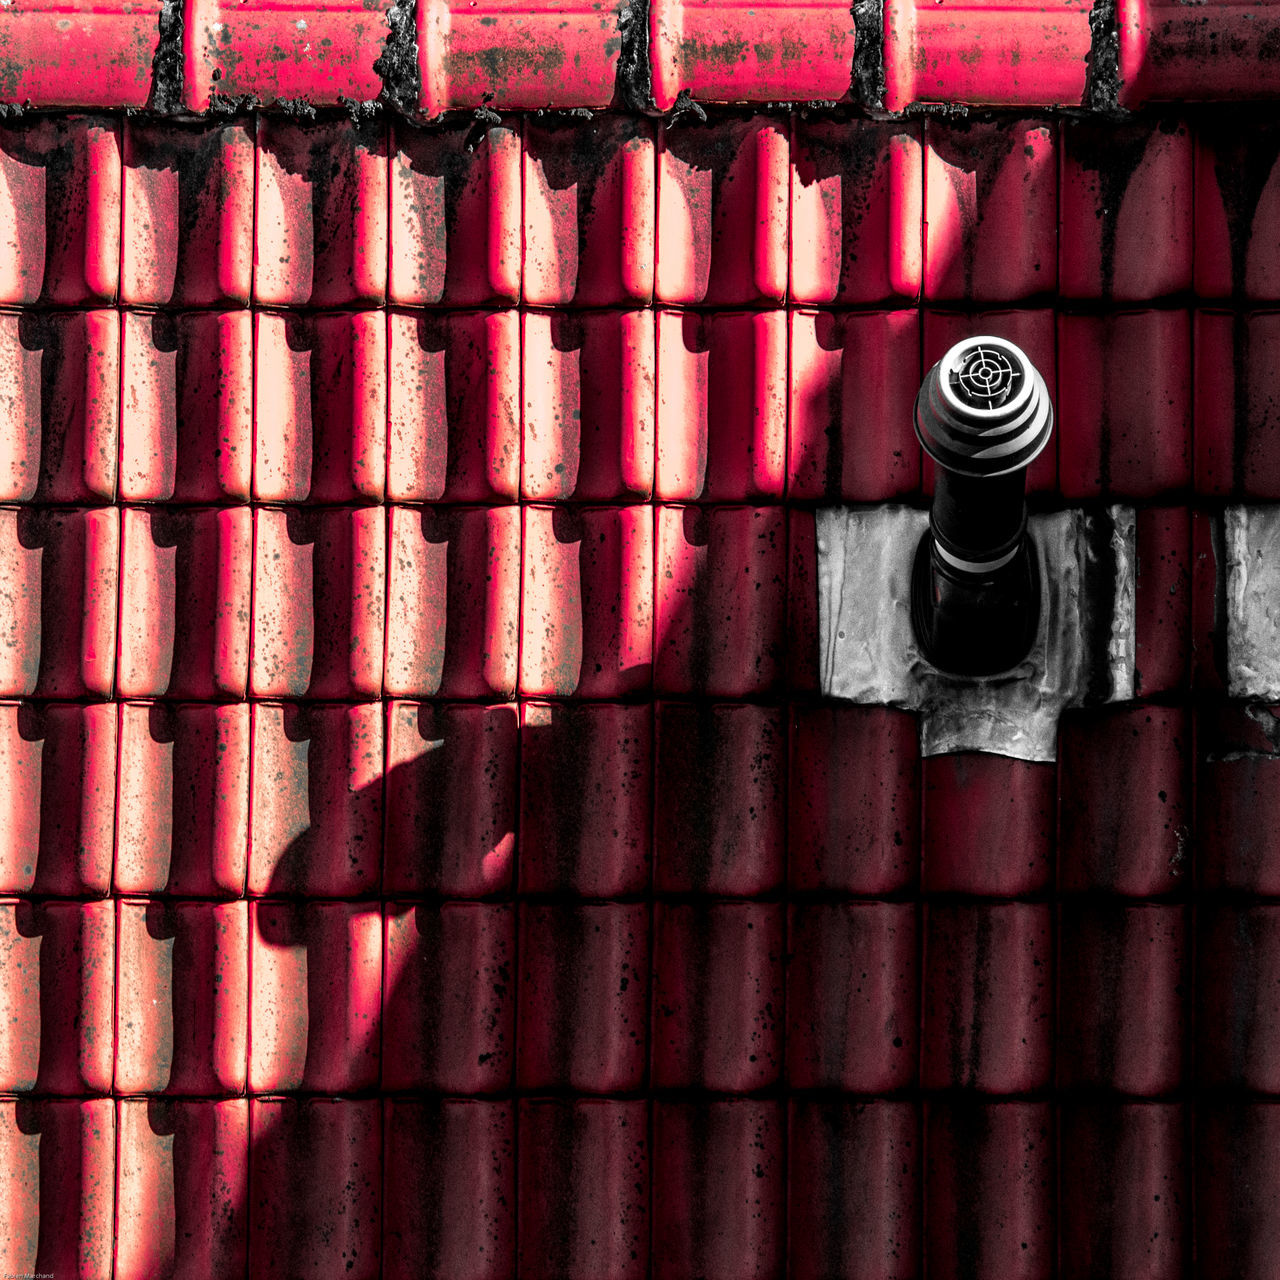 Revisit 025 Architectural Detail Architecture Close-up Composition Day Diagonal Minimalism Minimalz No People Outdoors Pattern Red Shadows & Lights Urban Geometry The Architect - 2017 EyeEm Awards BYOPaper! Premium Collection